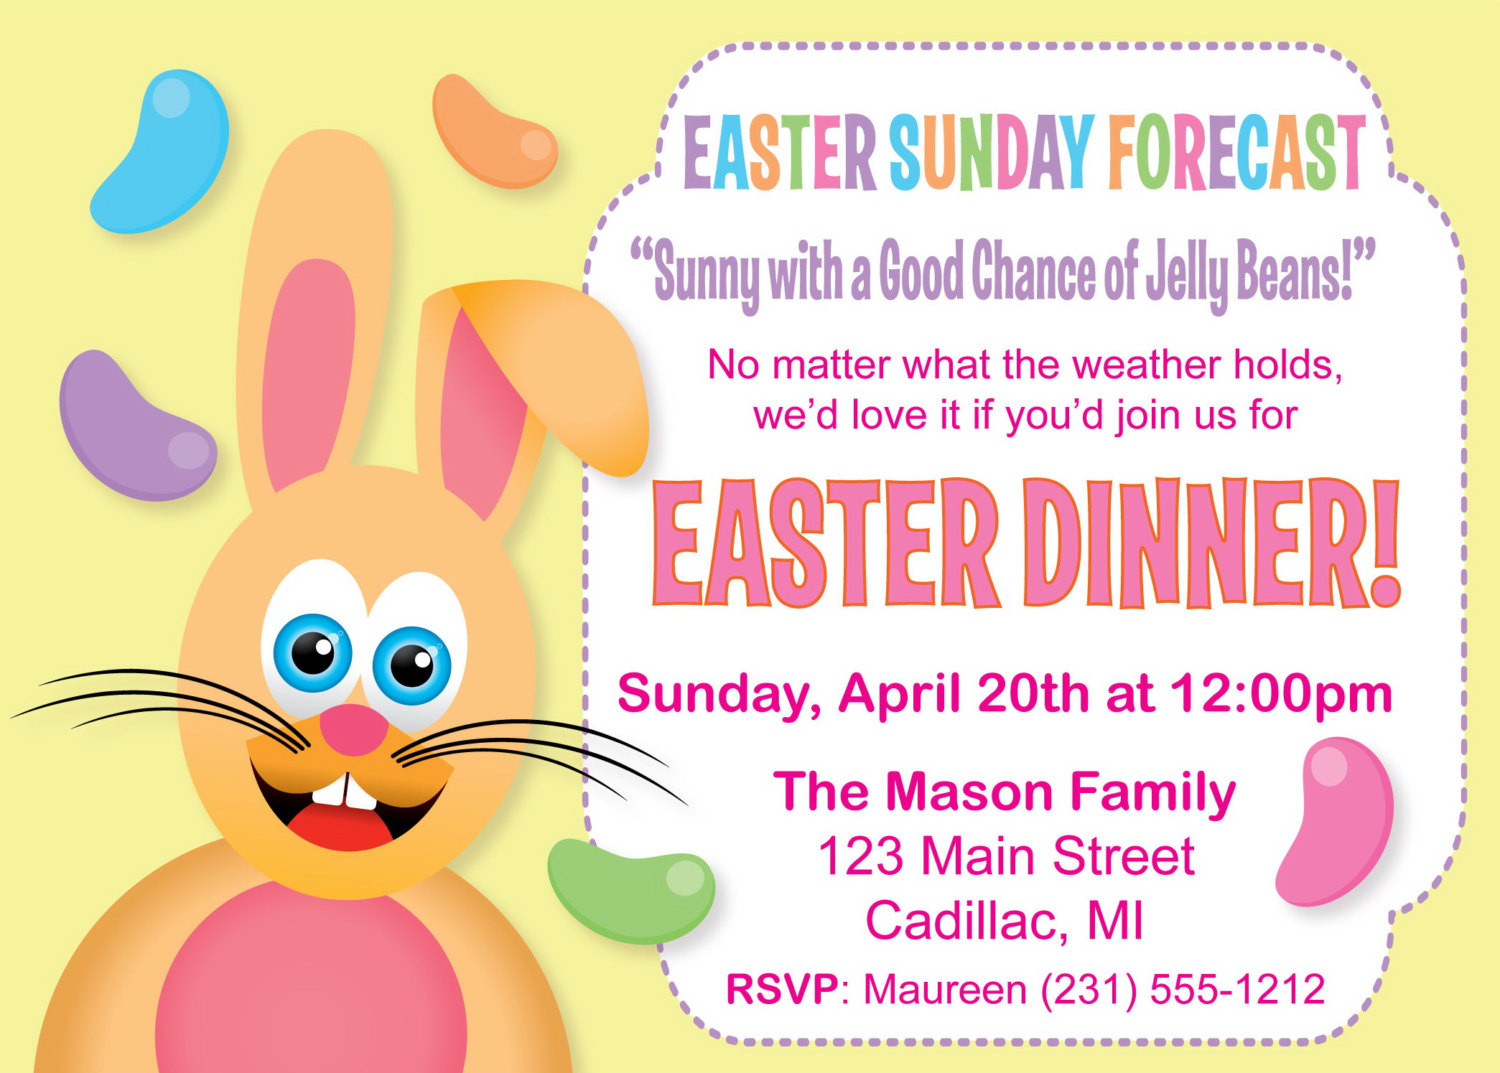 Easter Dinner Invitations top 20 Humorous Easter Dinner Invitation Funny Easter Invitation